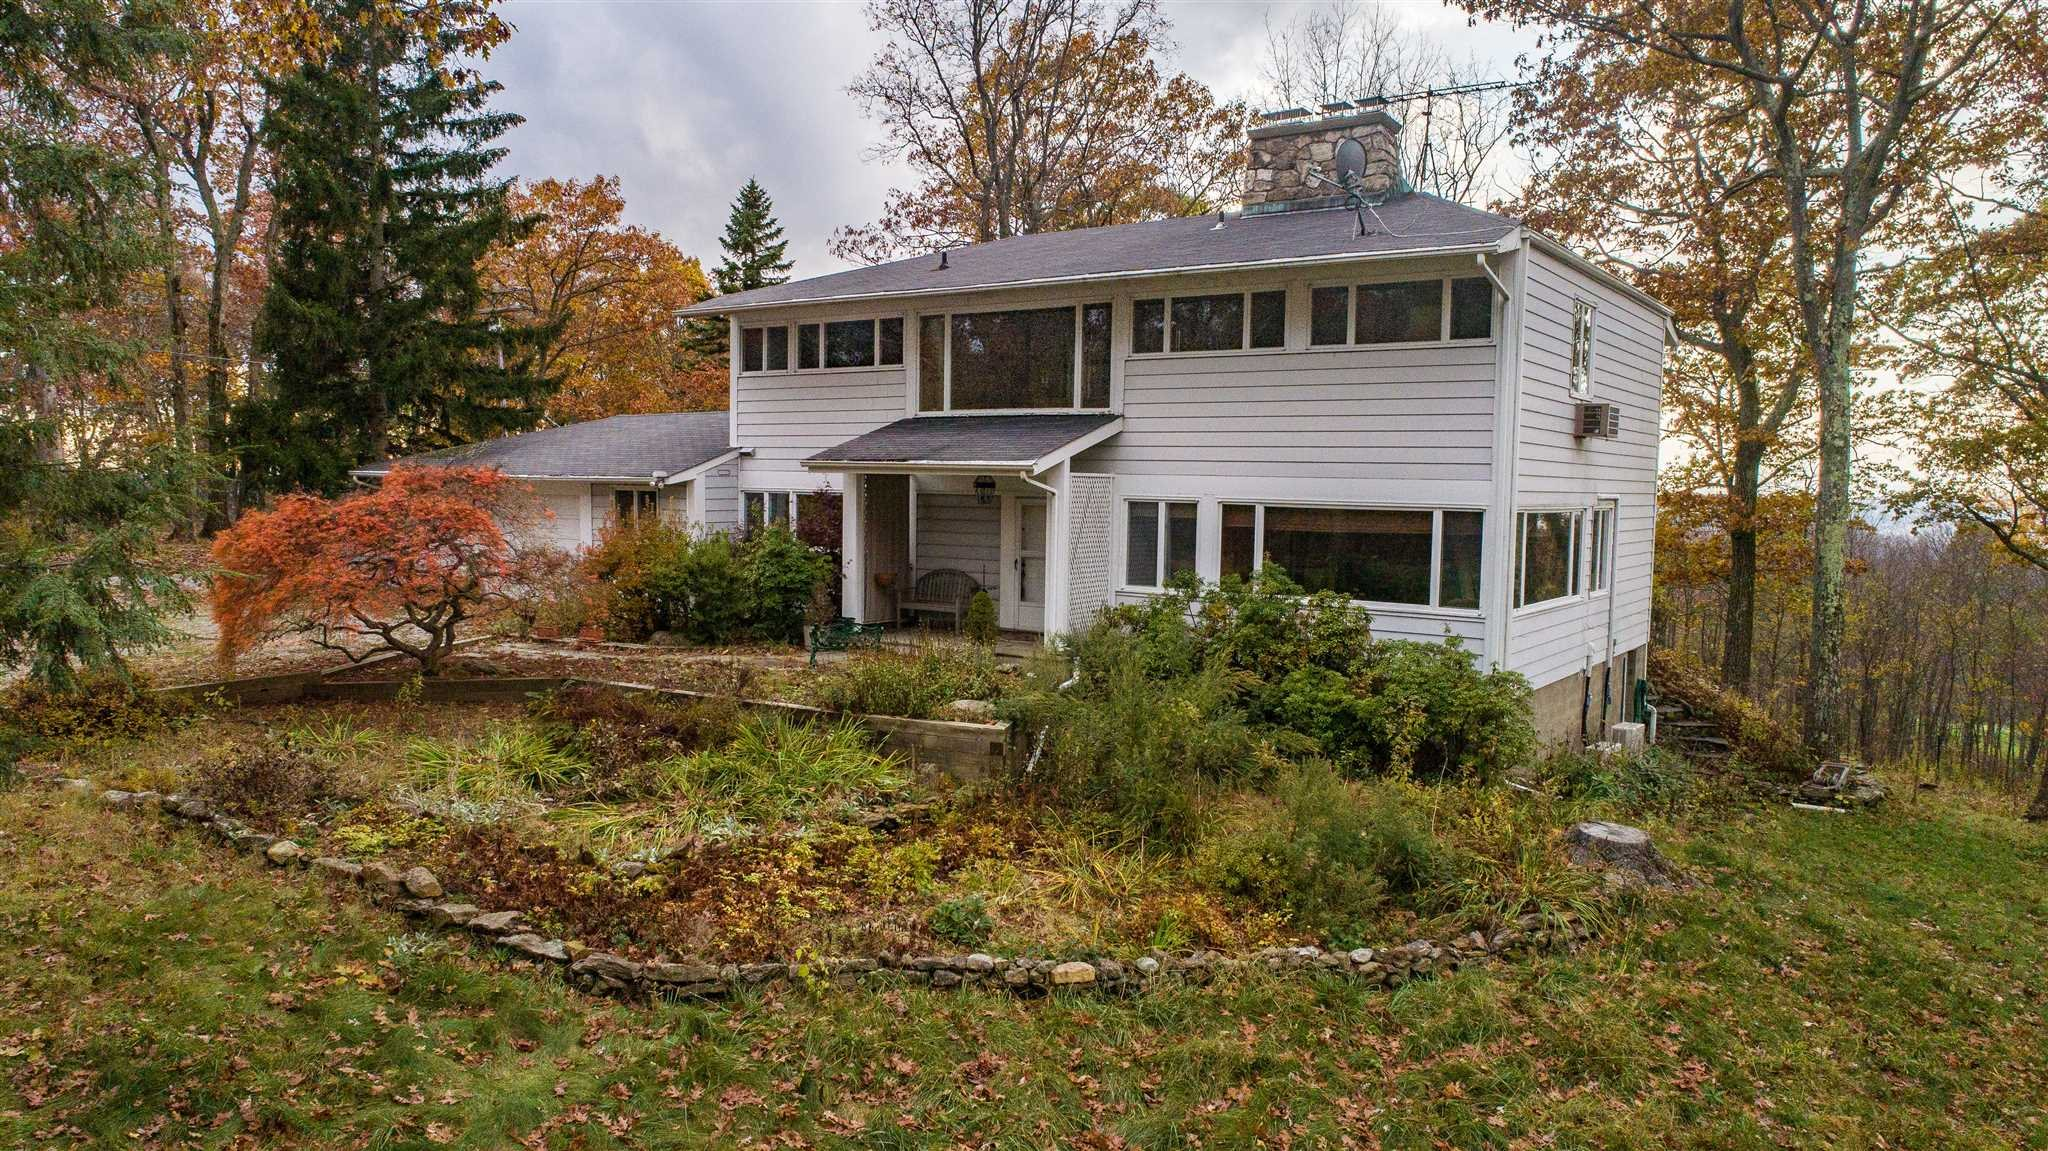 Single Family Home for Sale at 959 OLD QUAKER HILL Road 959 OLD QUAKER HILL Road Pawling, New York 12564 United States